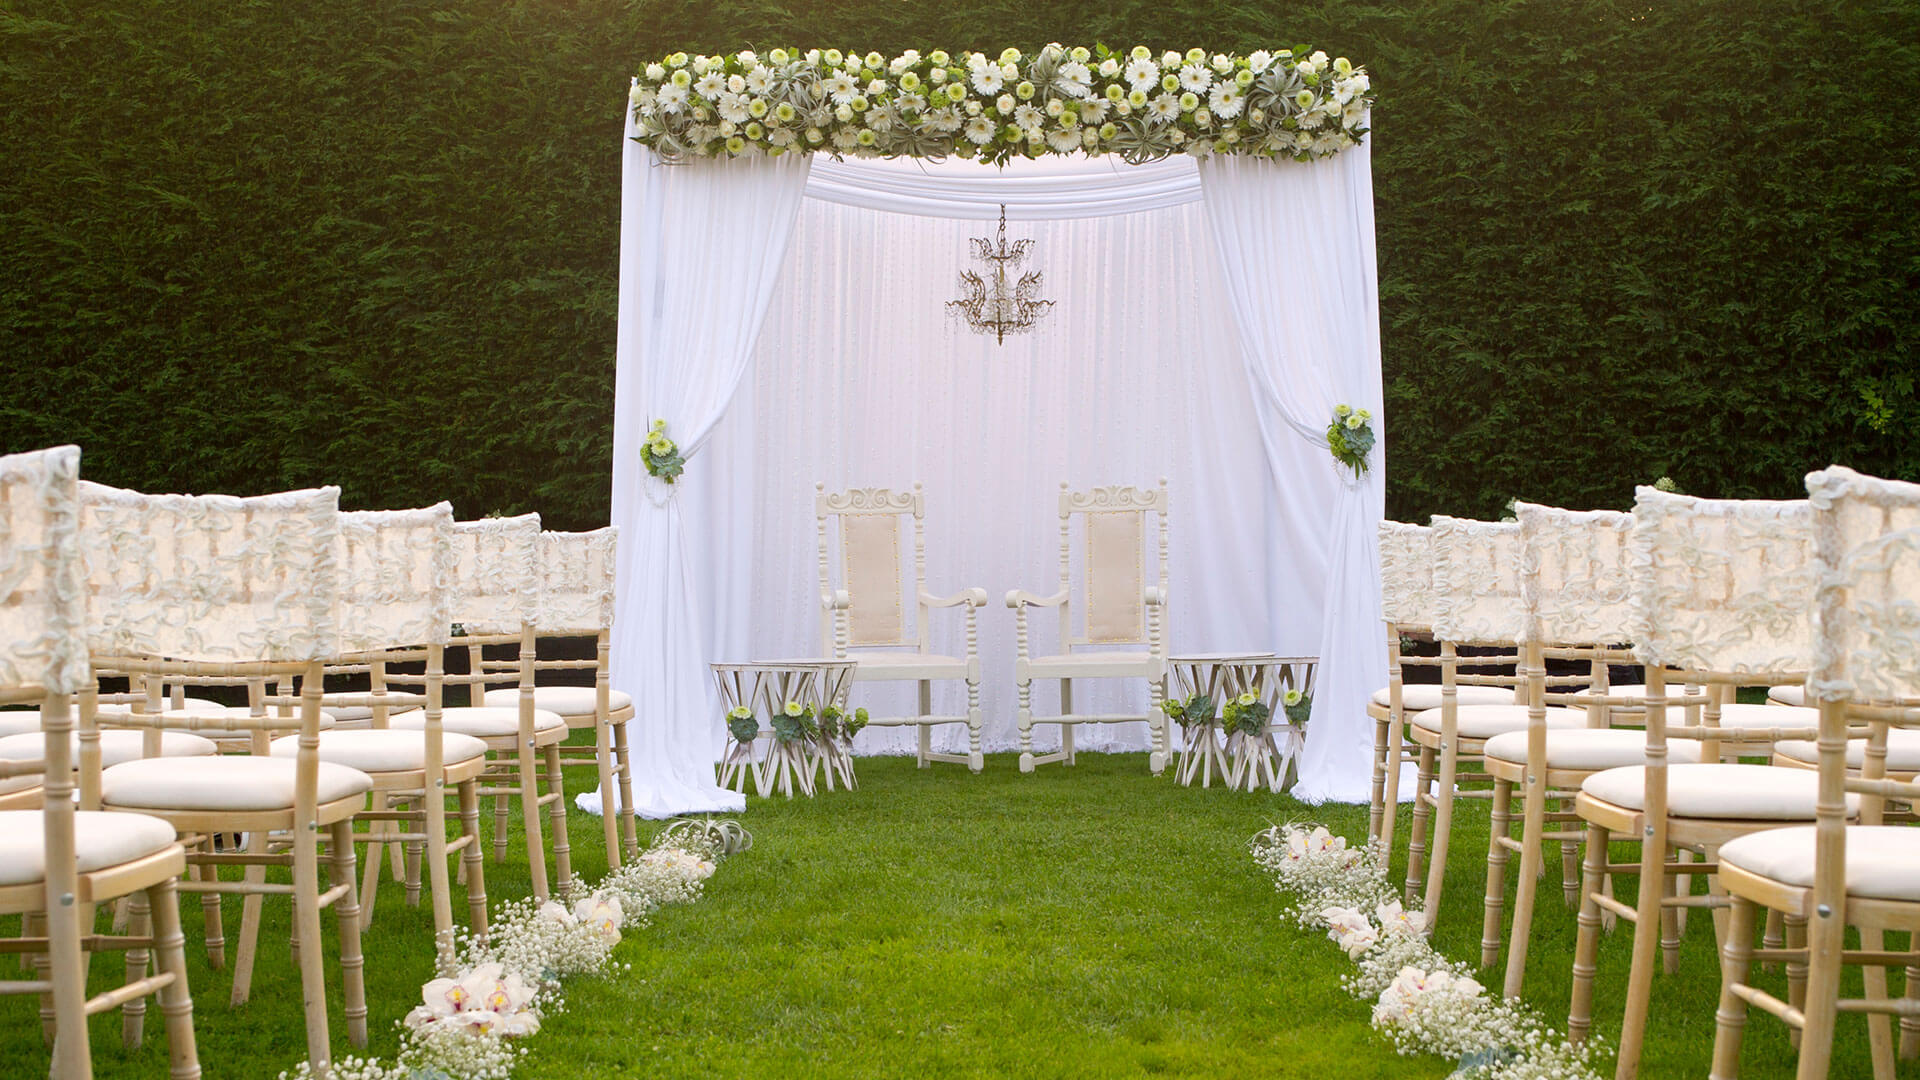 Stunning white wedding with white flowers and gypsophila - wedding ideas